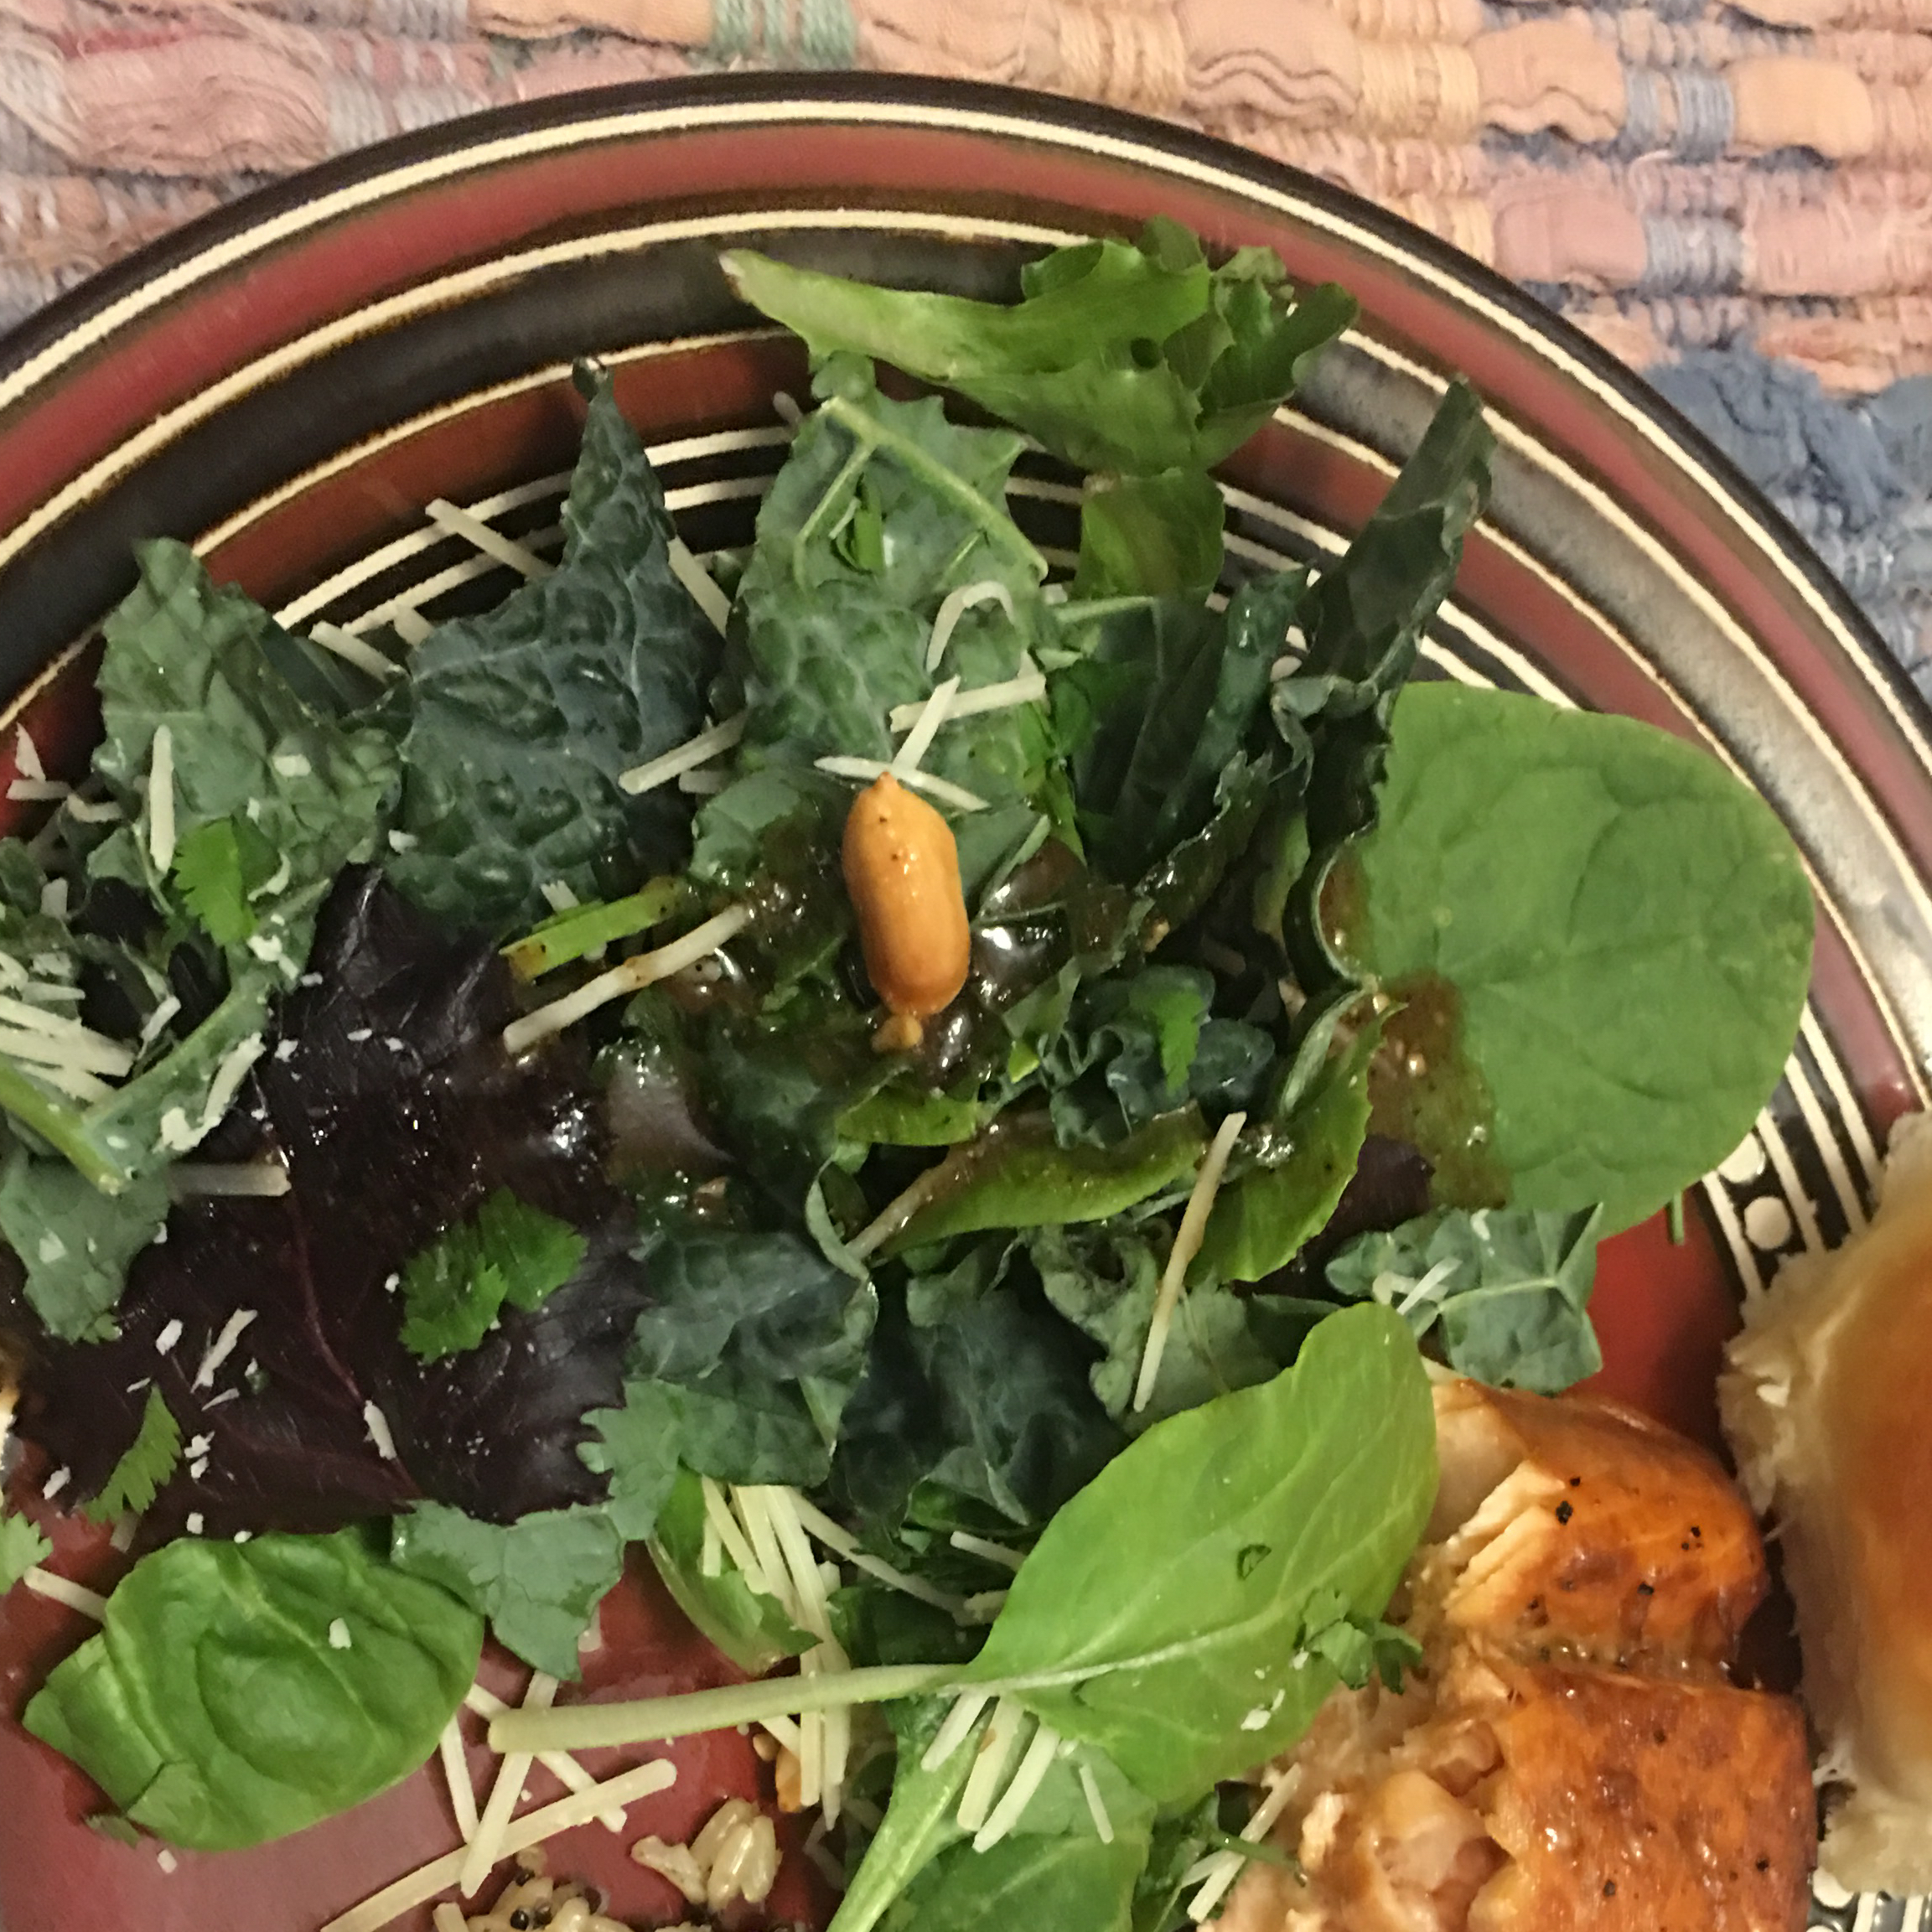 Kale Salad with Peanut Dressing